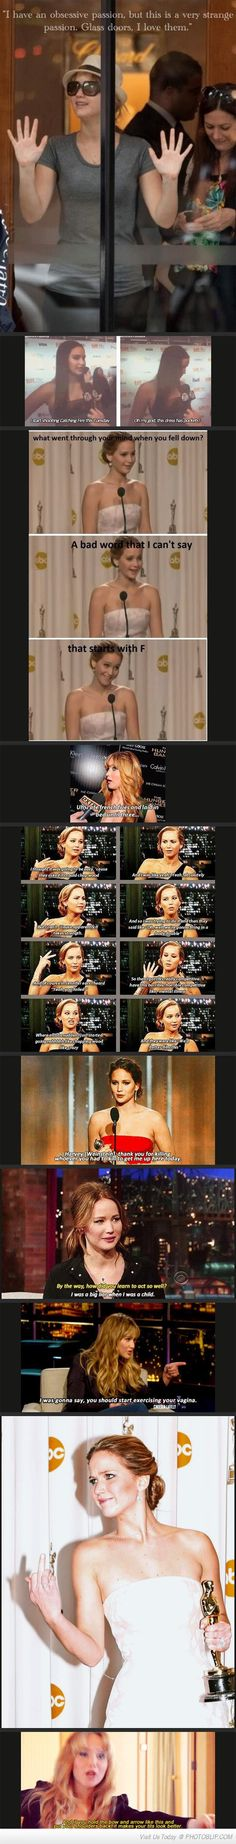 I love Jennifer Lawrence so much.